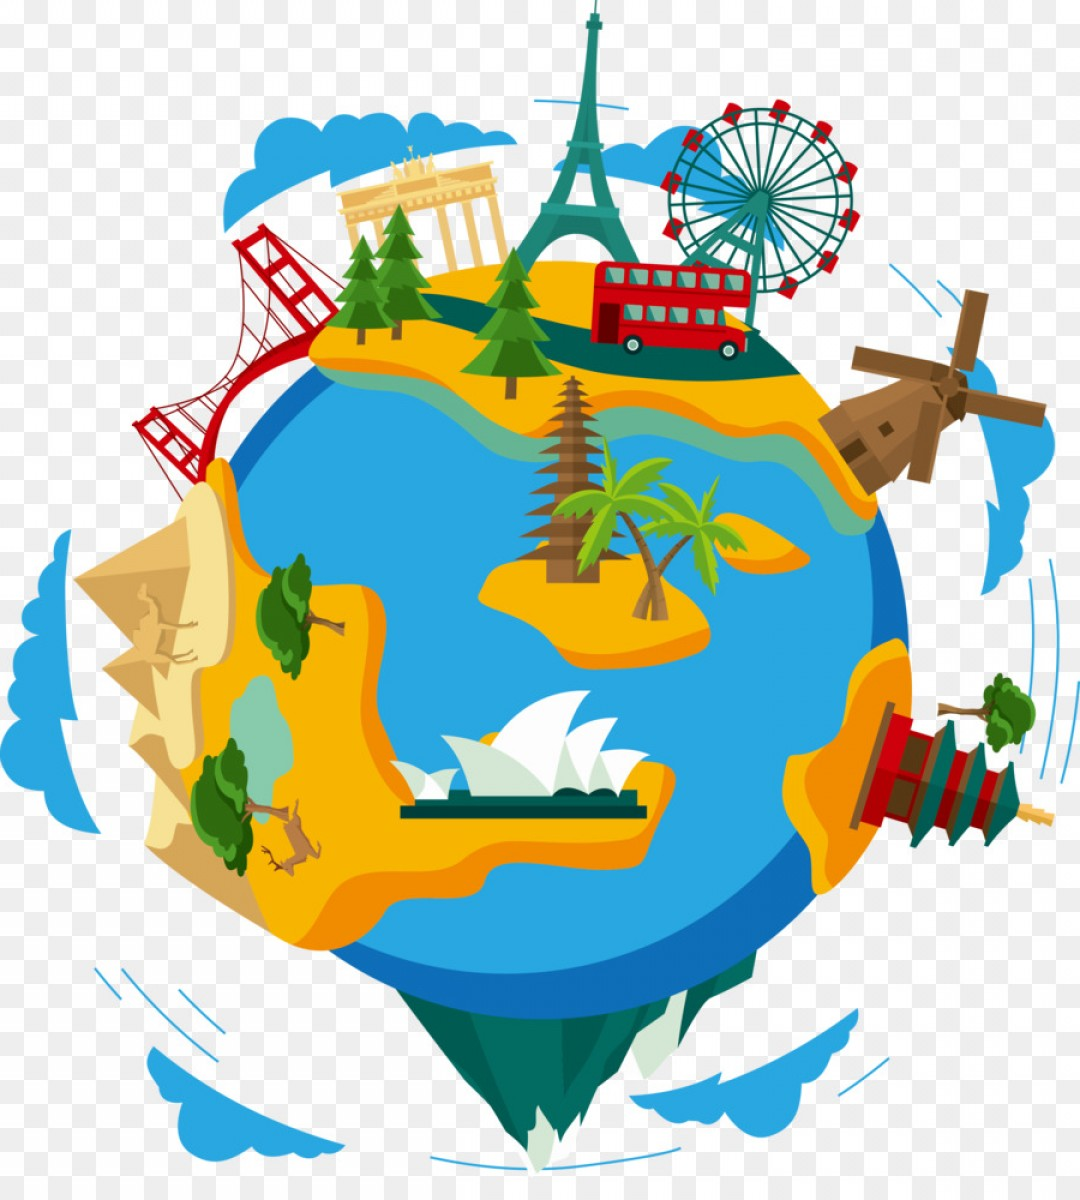 Png Earth Clip Art Global Travel Route Vector.